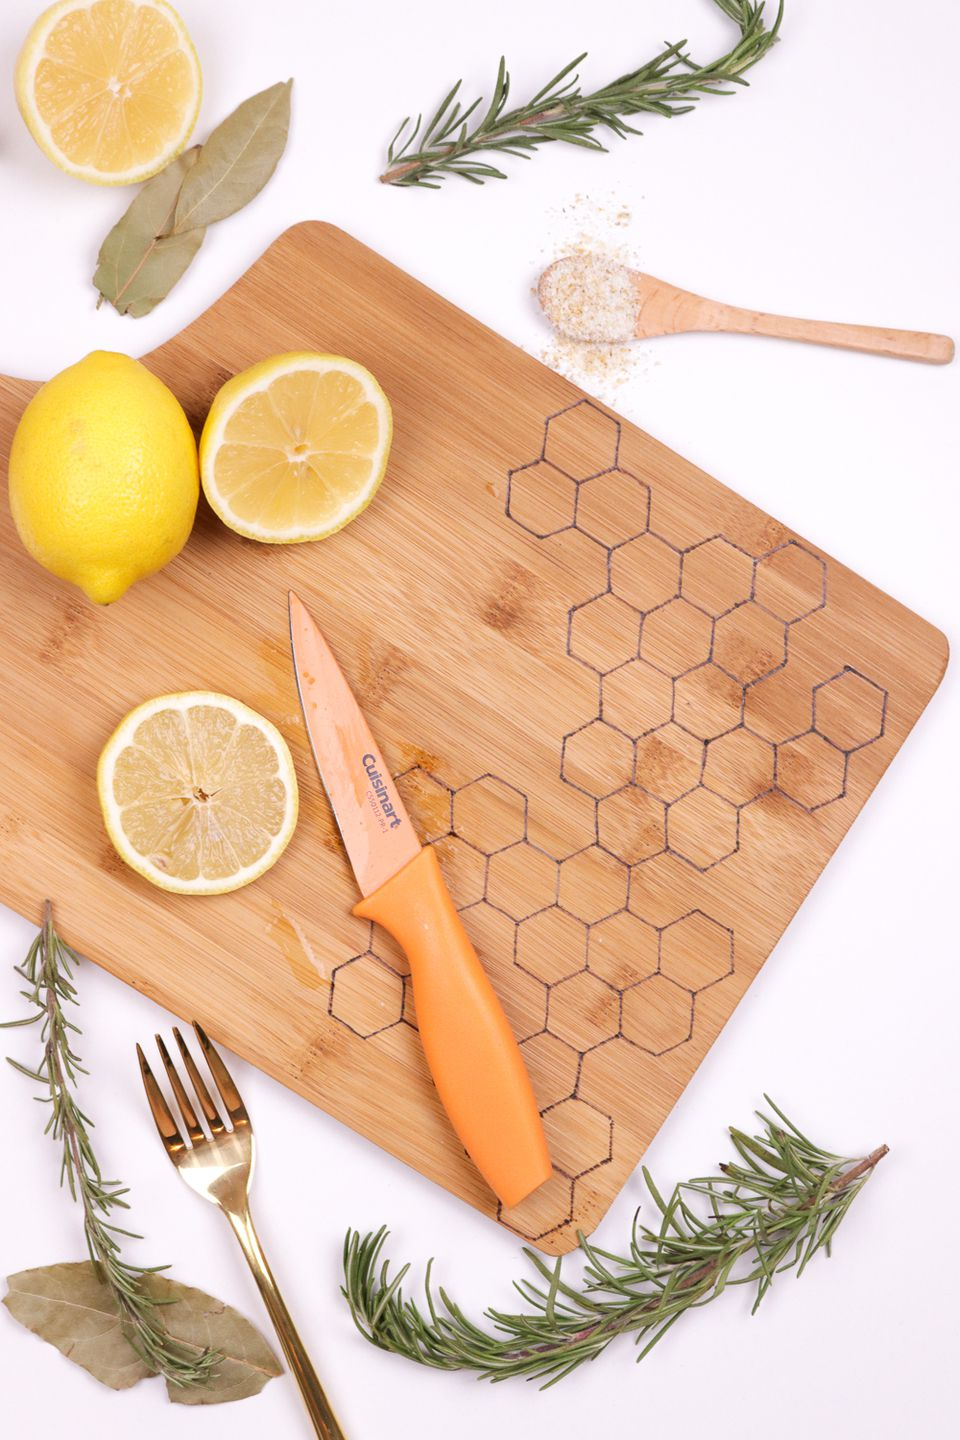 DIY Honeycomb Burnt Cutting Board